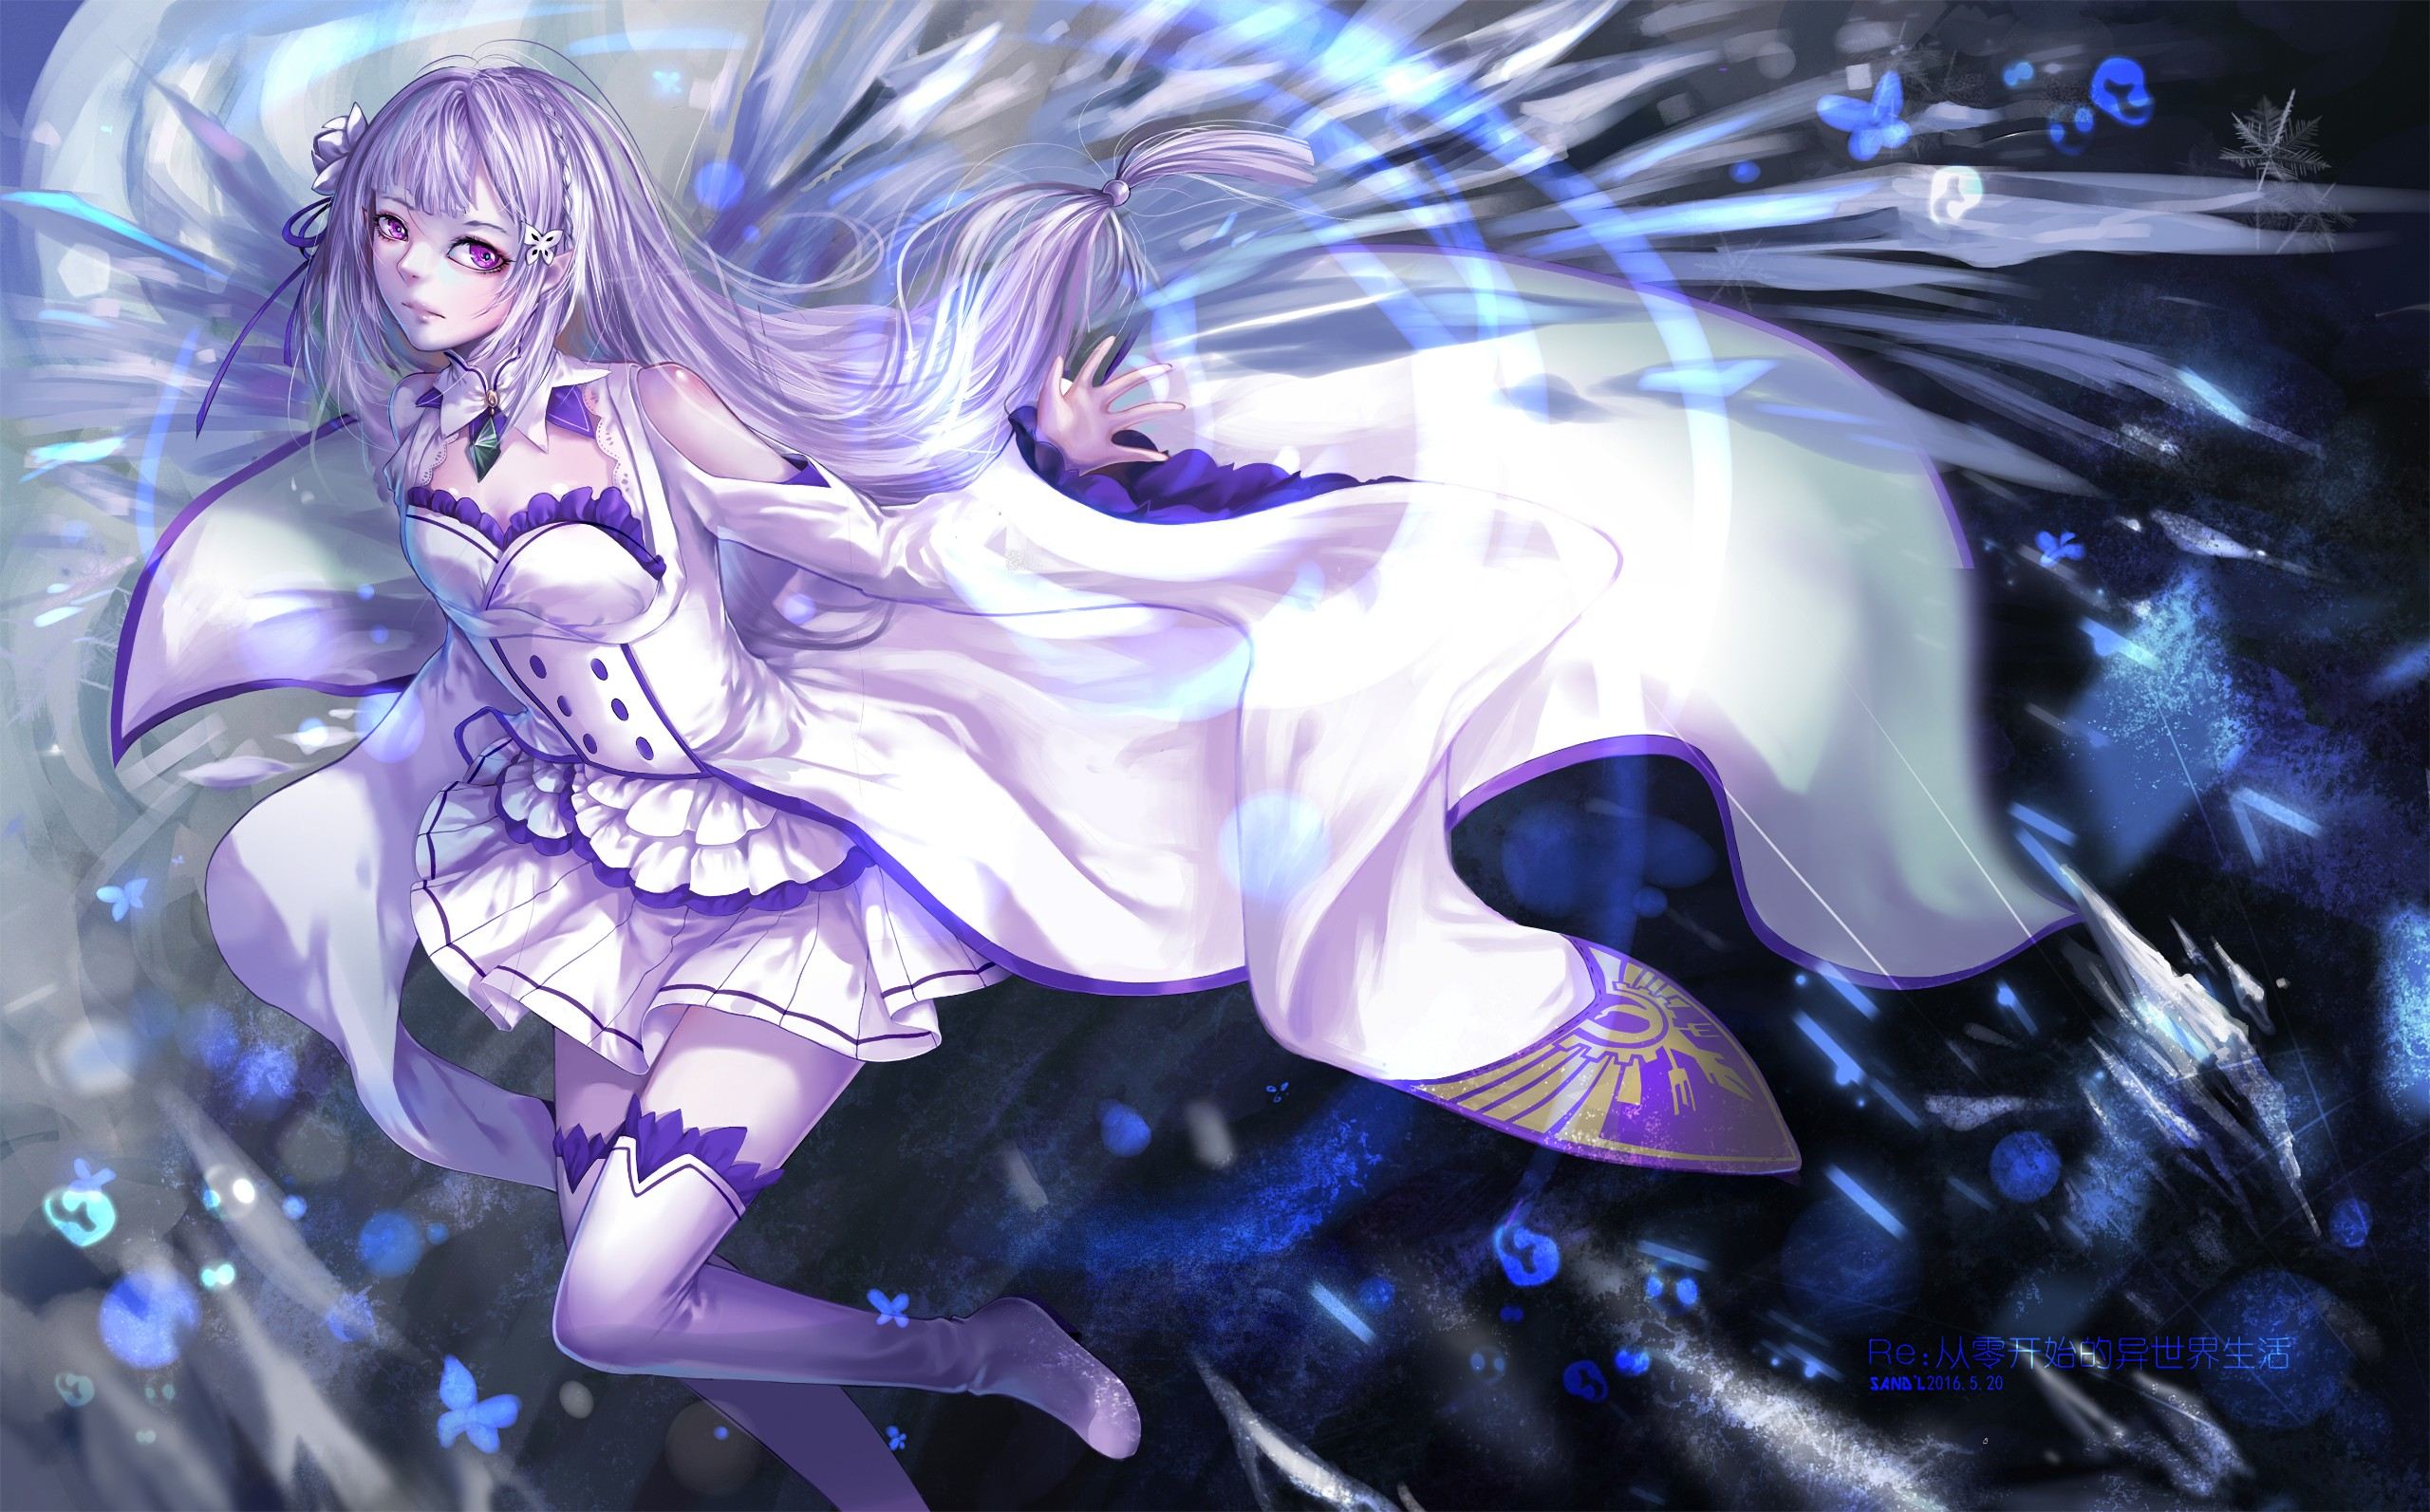 Re zero wallpaper download free cool hd wallpapers for - Download anime wallpaper hd for android ...